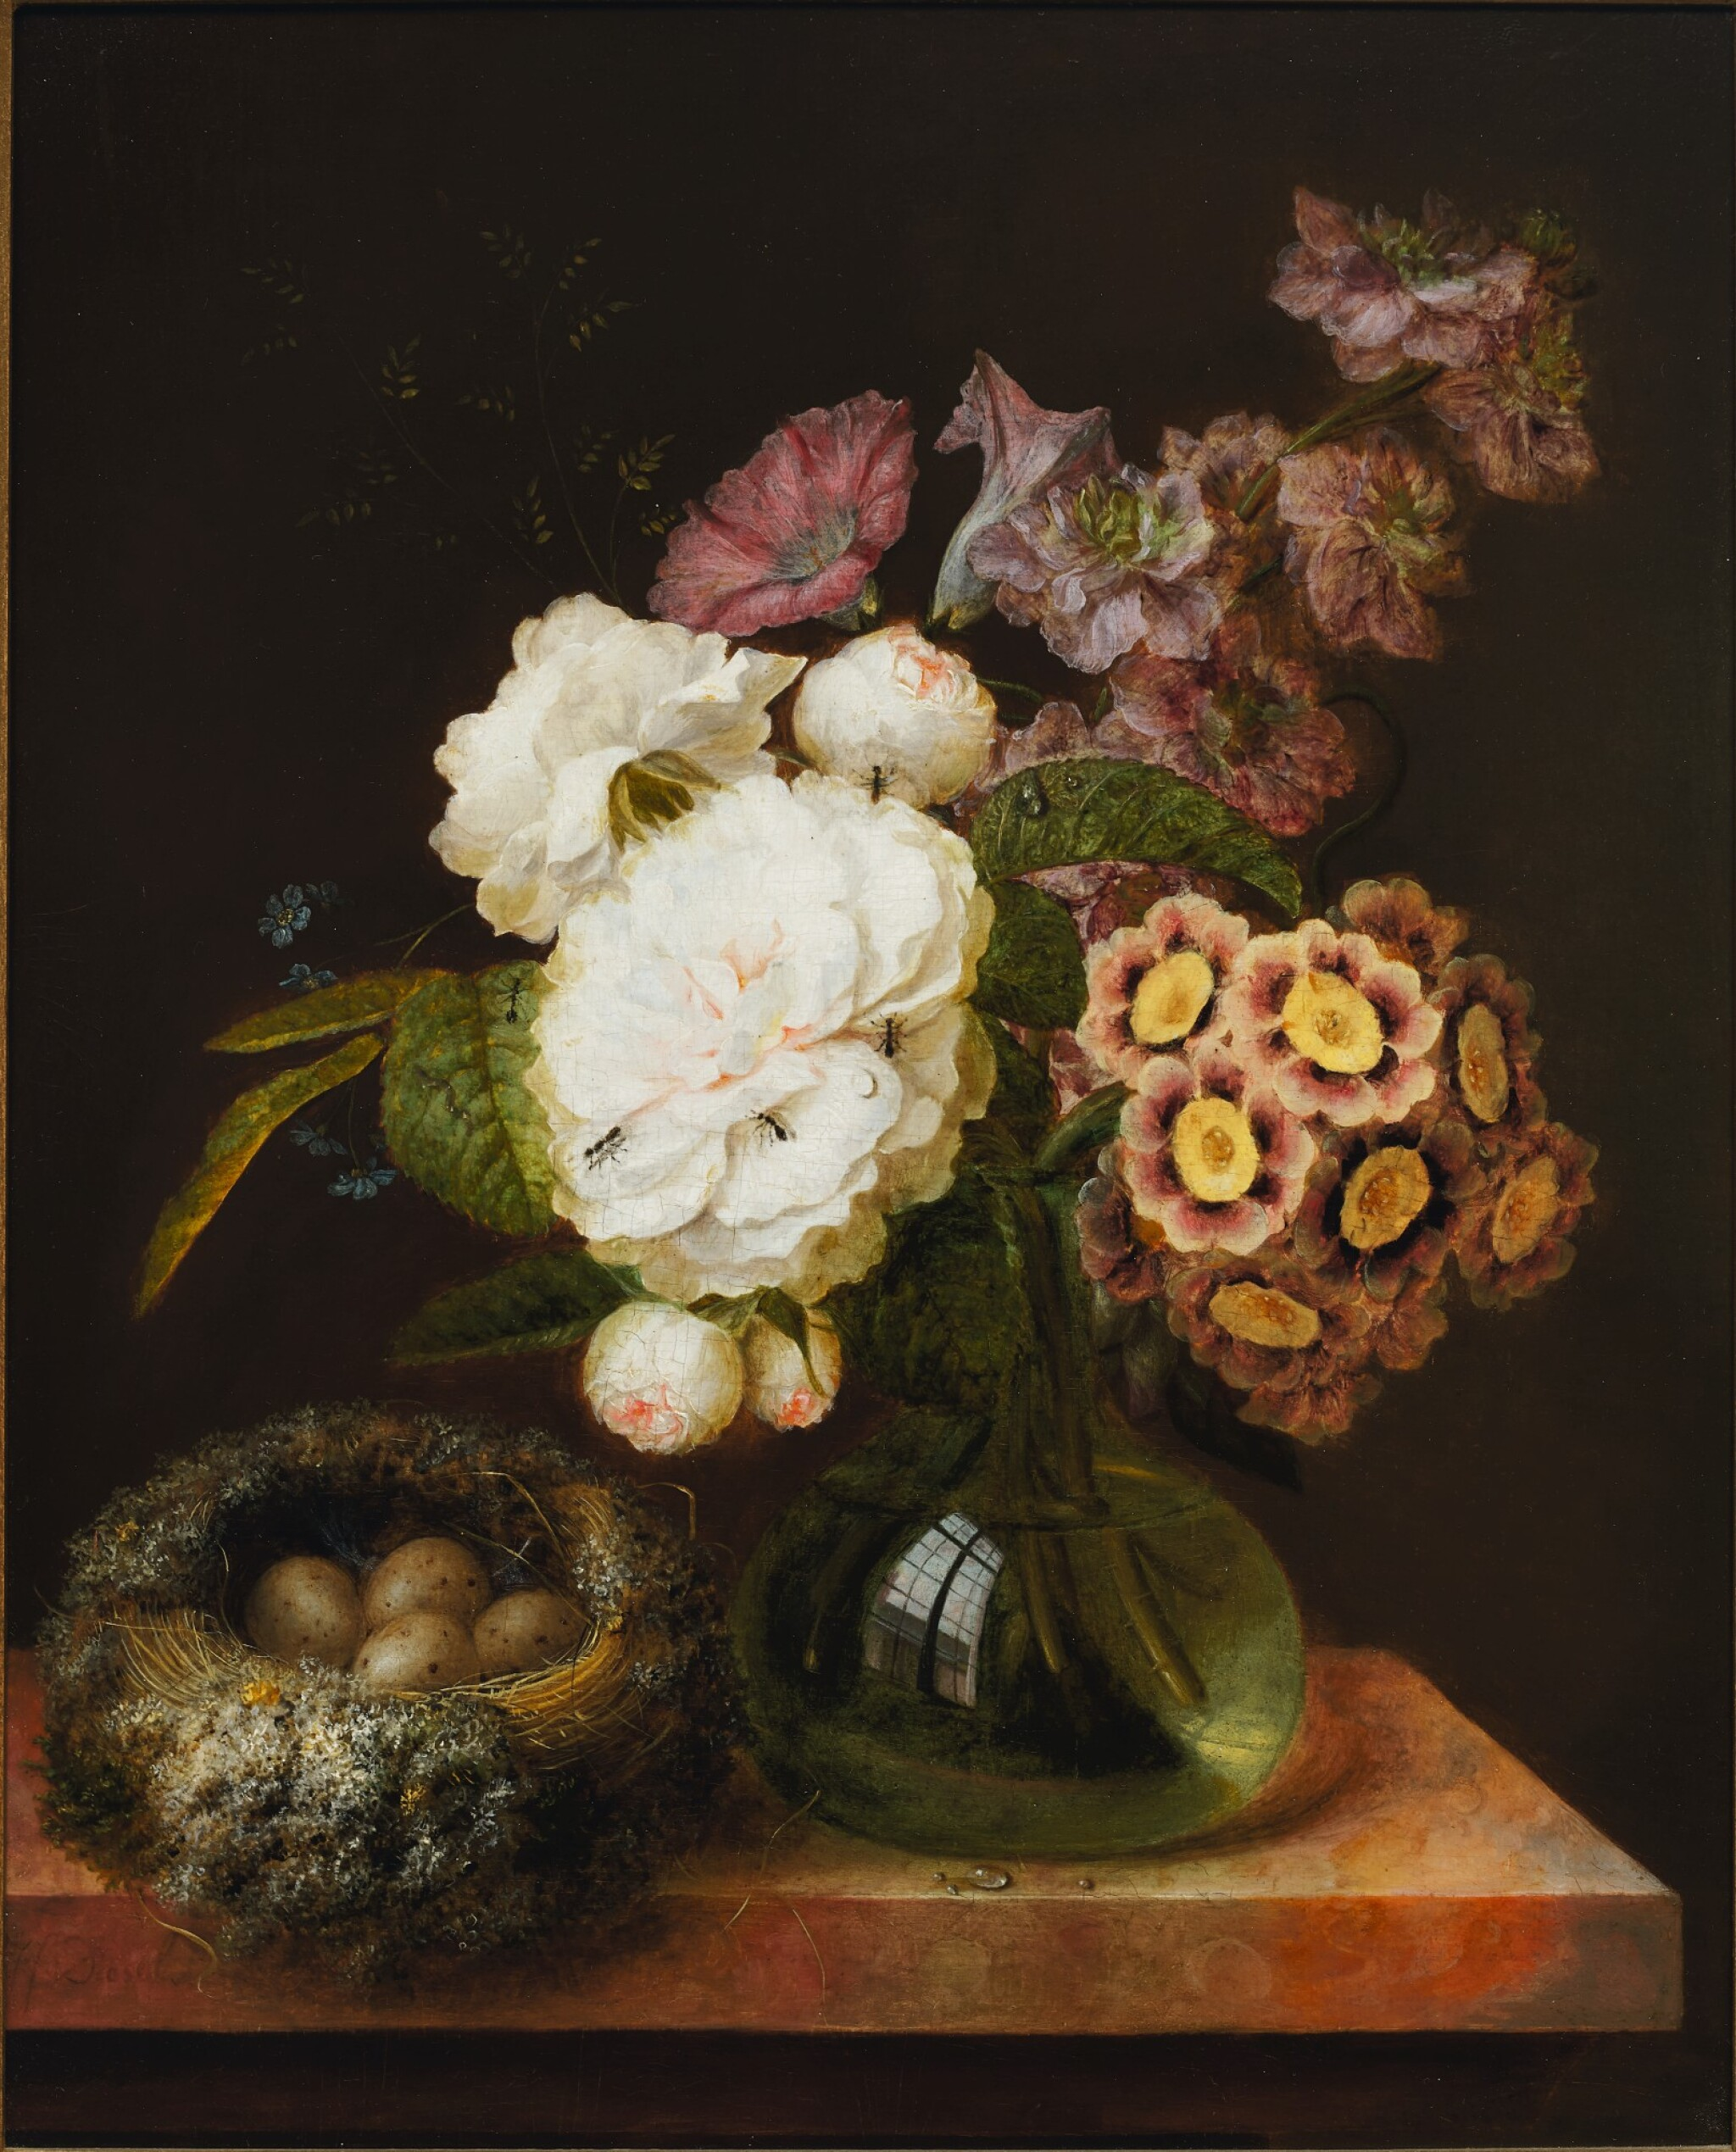 View full screen - View 1 of Lot 133. GEORGES FRÉDÉRIC ZIESEL  |  BOUQUET OF FLOWERS IN A VASE AND A BIRD'S NEST ON A MARBLE TABLE.